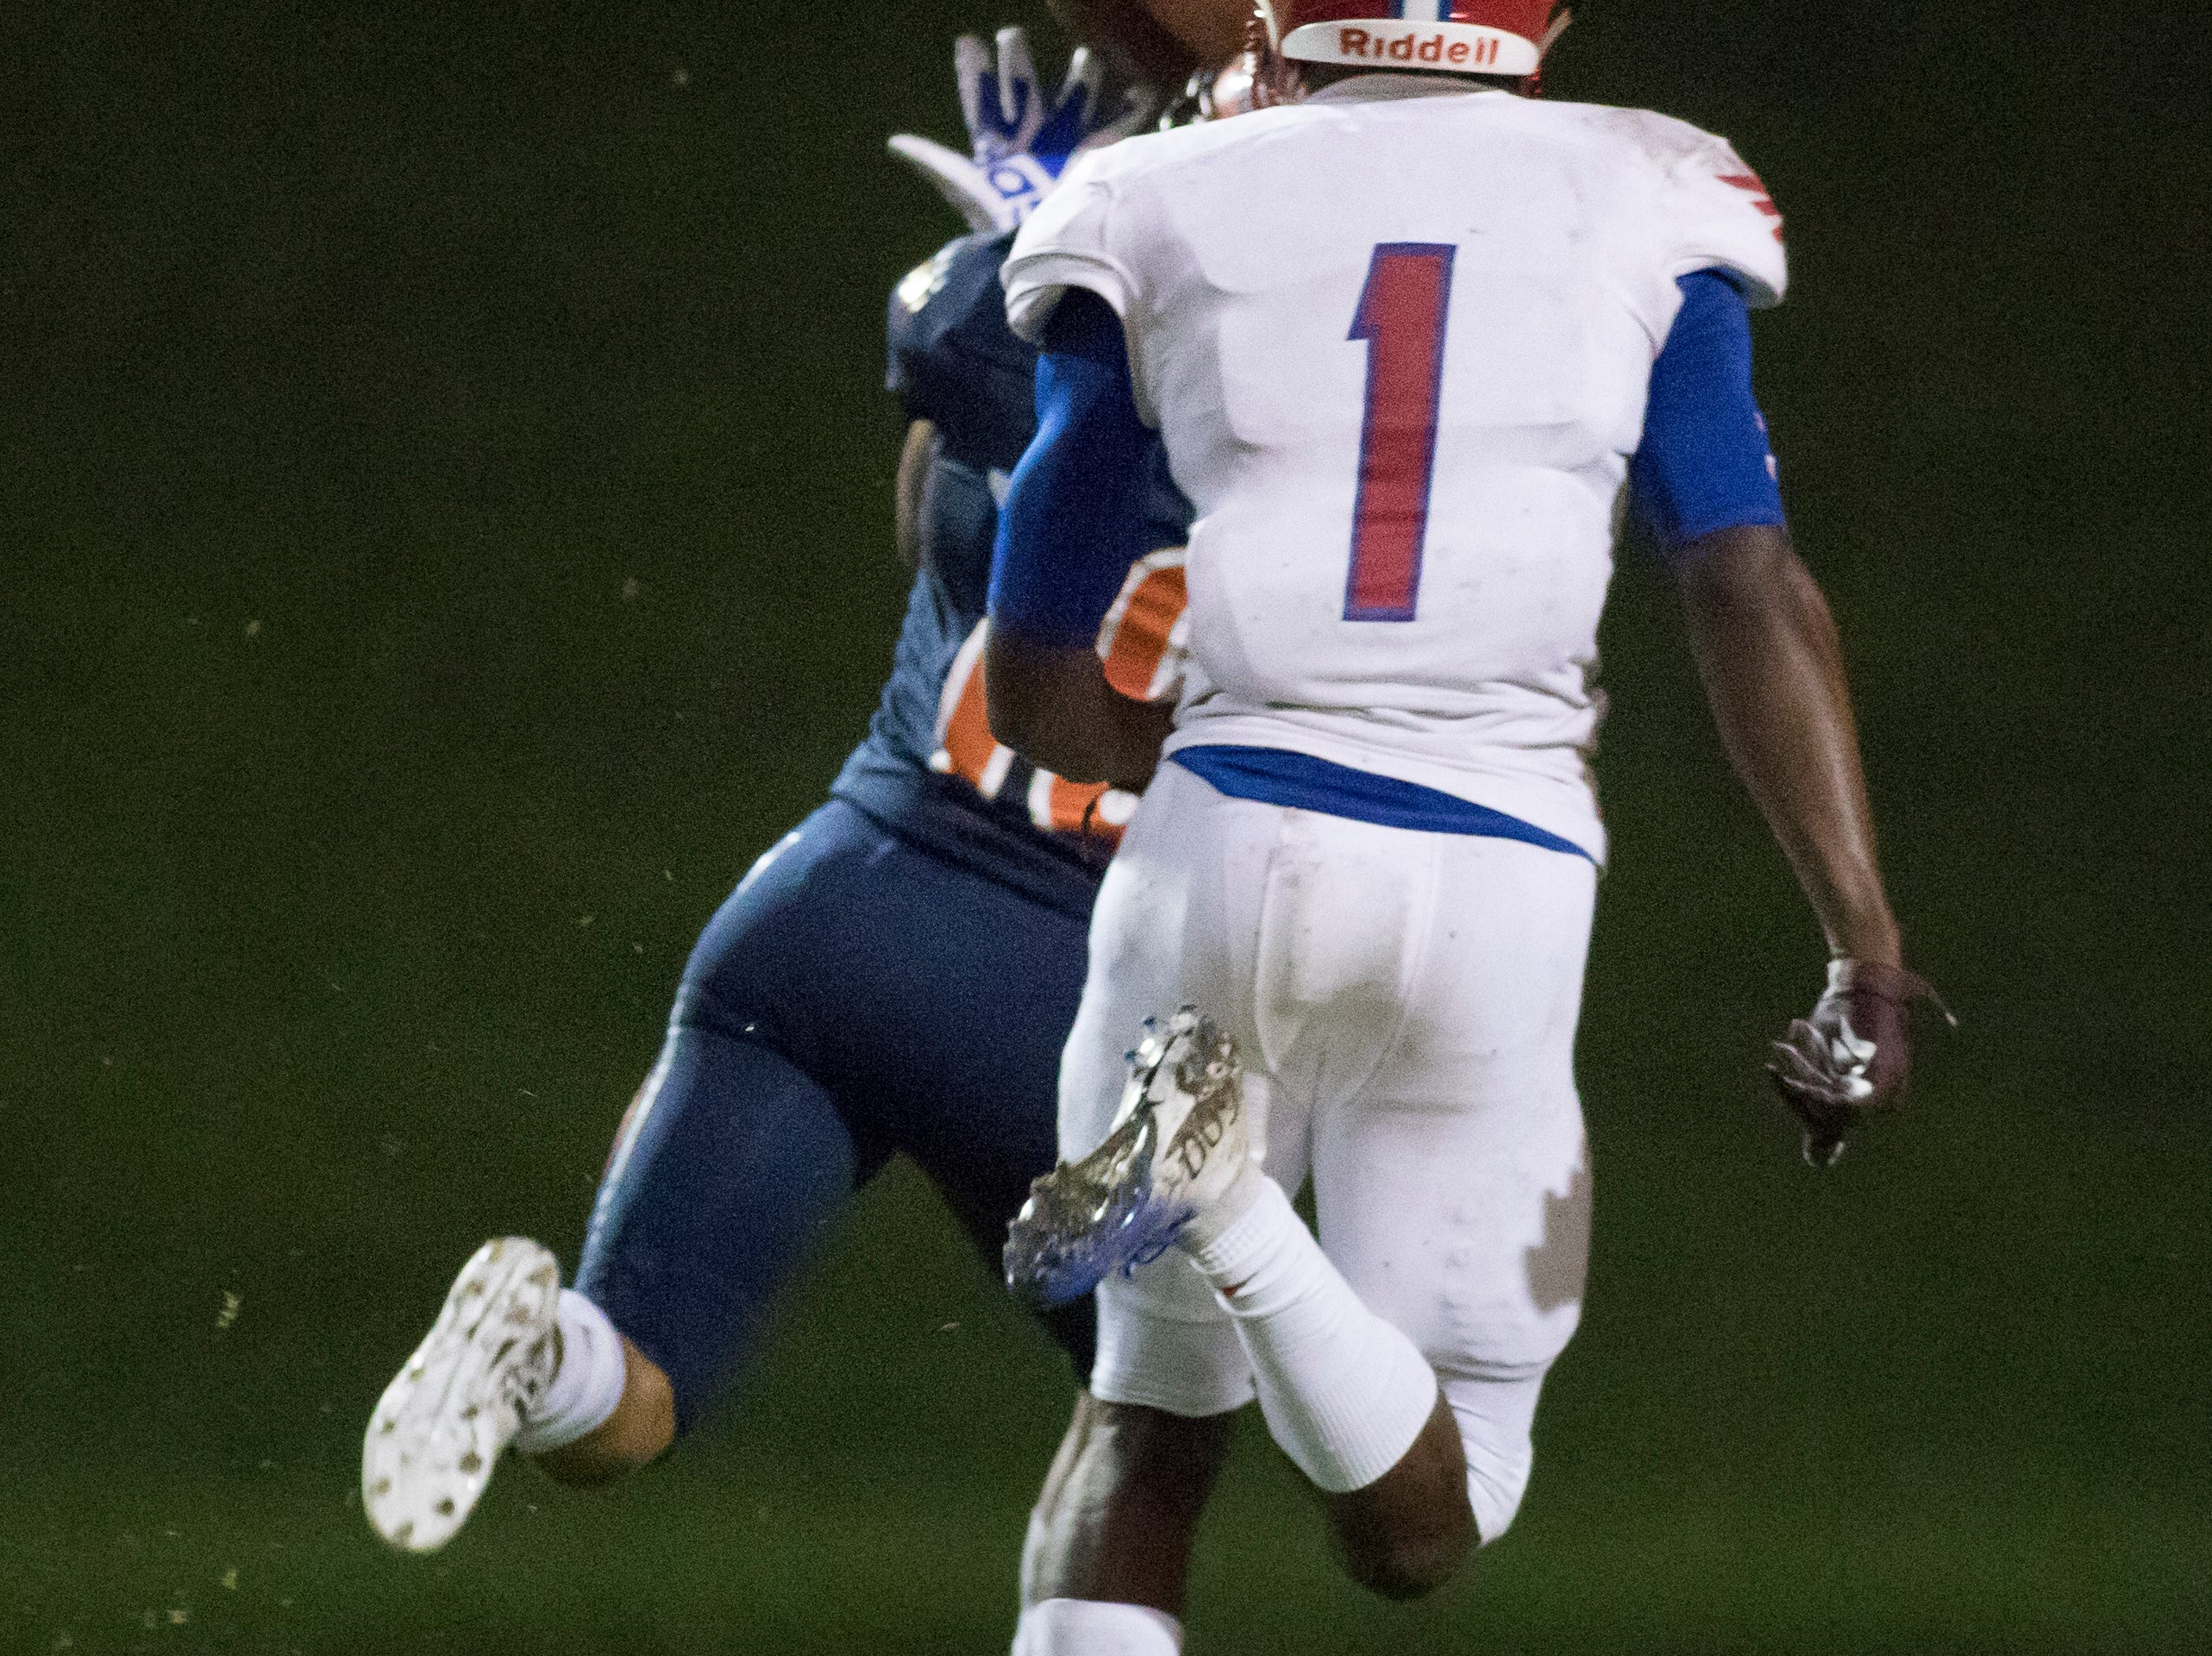 Martin Emerson (1) watches as JoJo Blackmon (10) catches a long pass for a touchdown leading to a 7-0 score during the Pine Forest vs Escambia football game at Escambia High School in Pensacola on Friday, September 28, 2018.